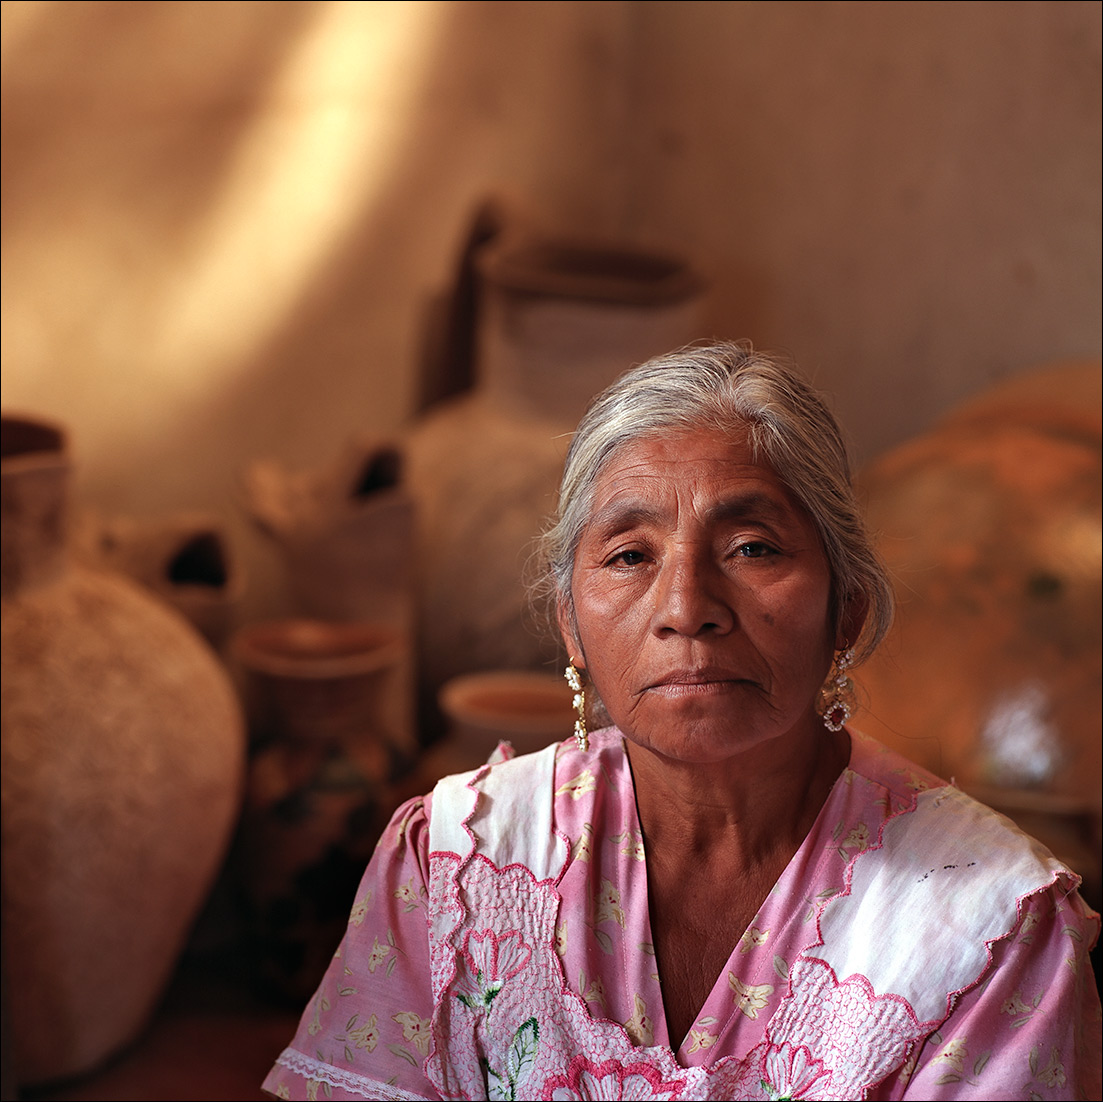 Dolores, Zapotec Women of Oaxaca